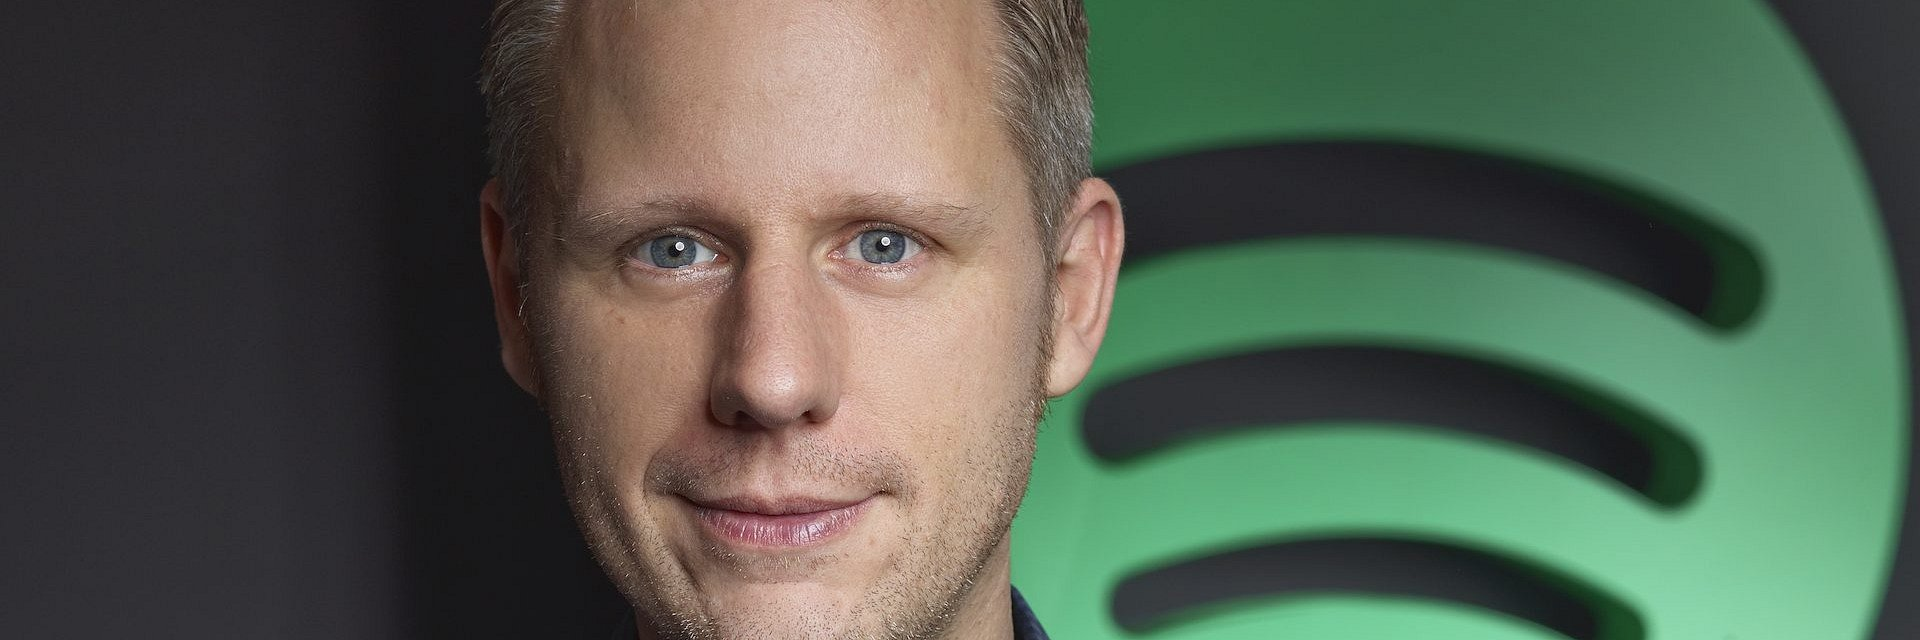 Fragen und Antworten mit Michael Krause, Managing Director Spotify Central Europe